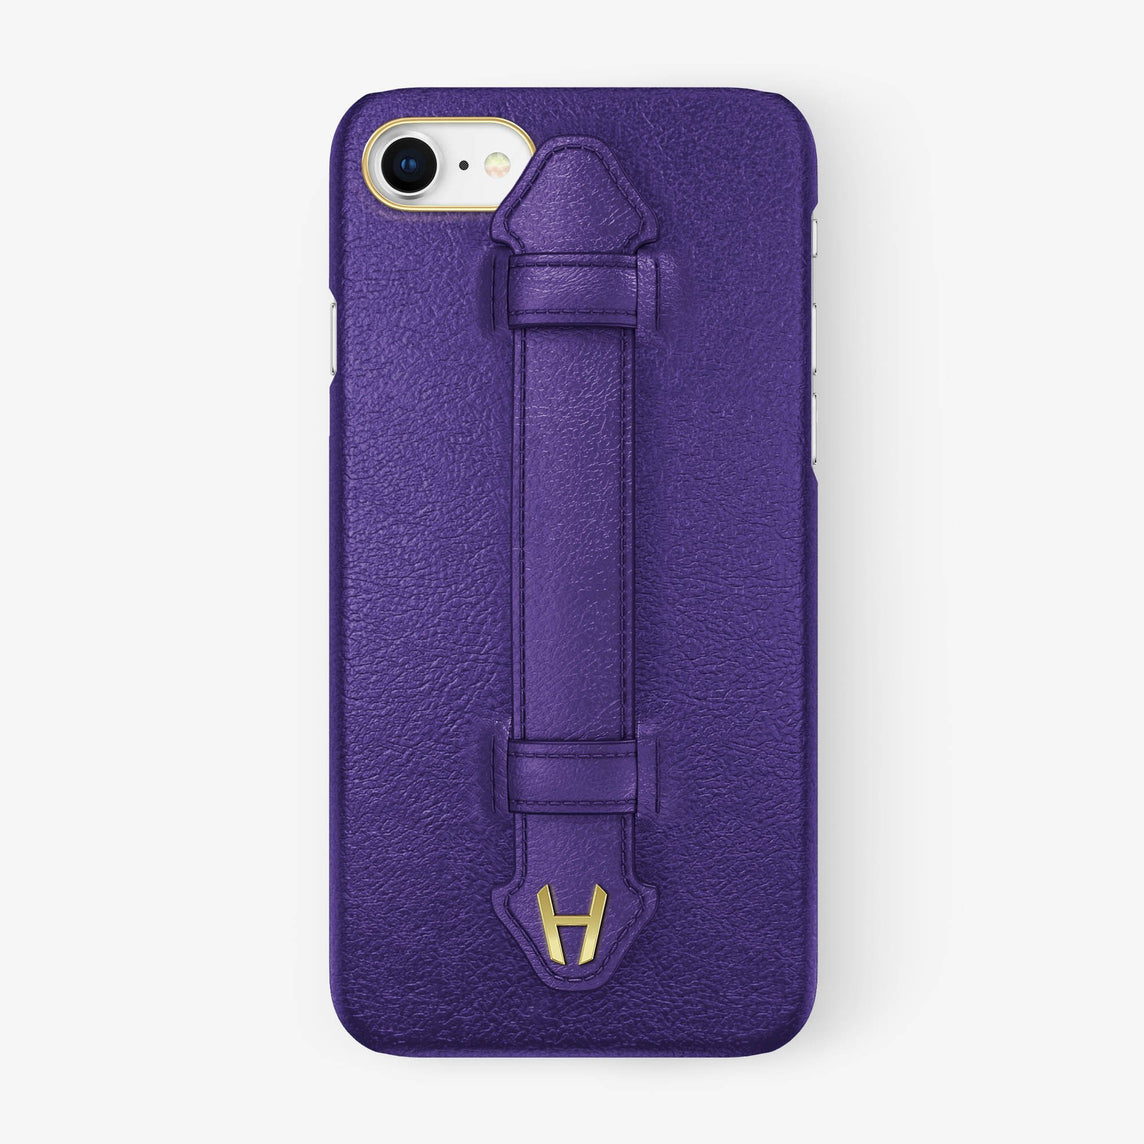 Purple Calfskin iPhone Finger Case for iPhone 7/8 finishing yellow gold - Hadoro Luxury Cases